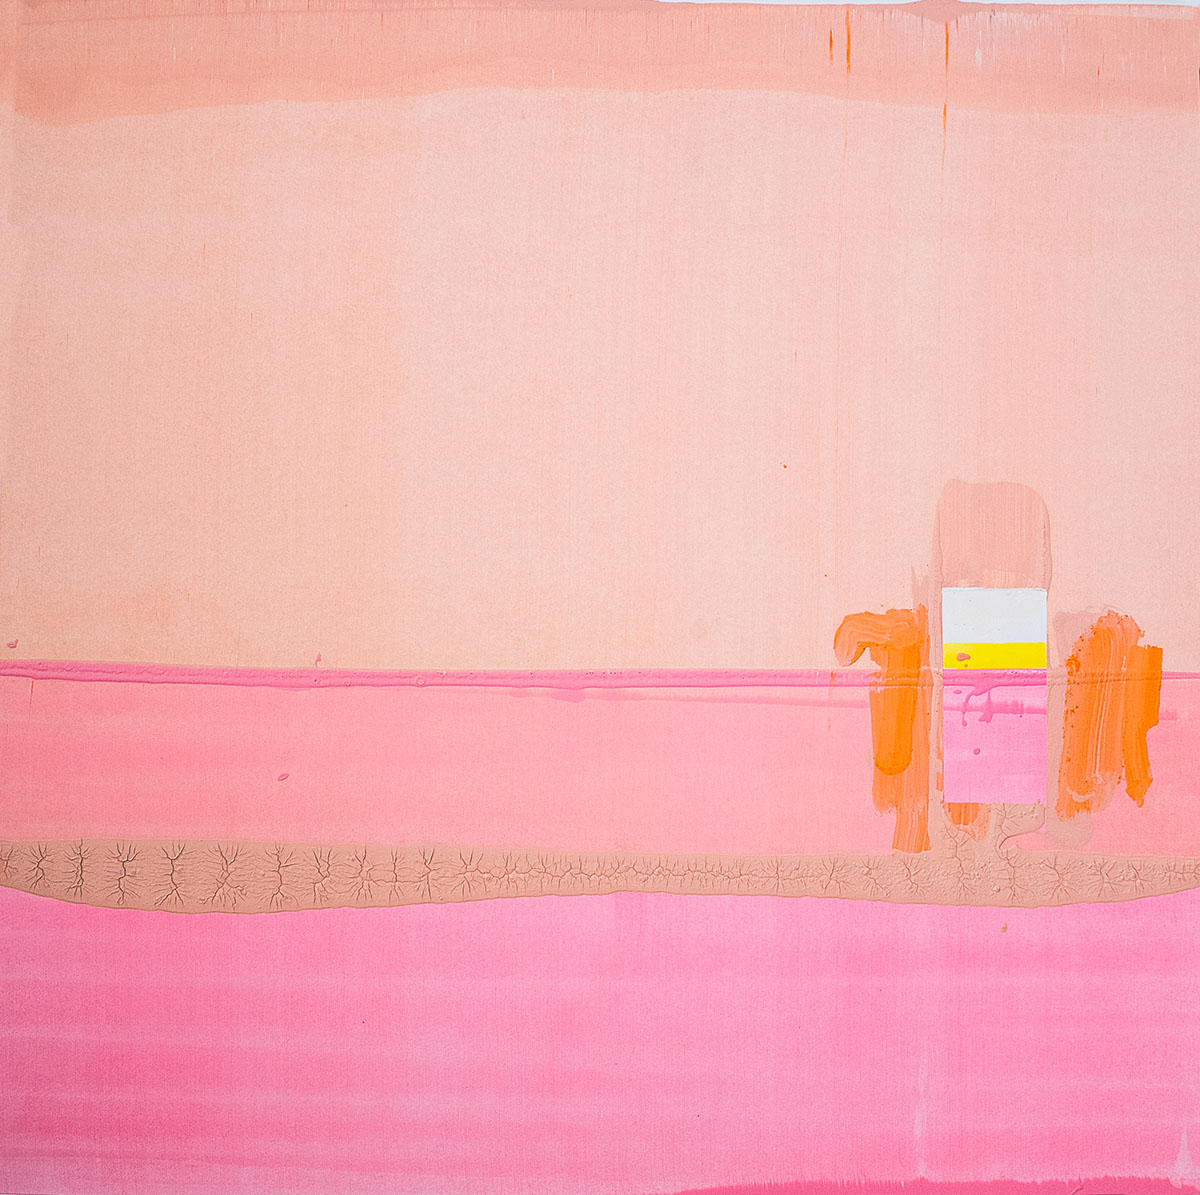 Lena Knilli I Am Still Looking For The Door (pink 1), 2019 Aquarell, Akryl und Eitempera auf Papier 70 x 70 cm Foto: F Alpagu